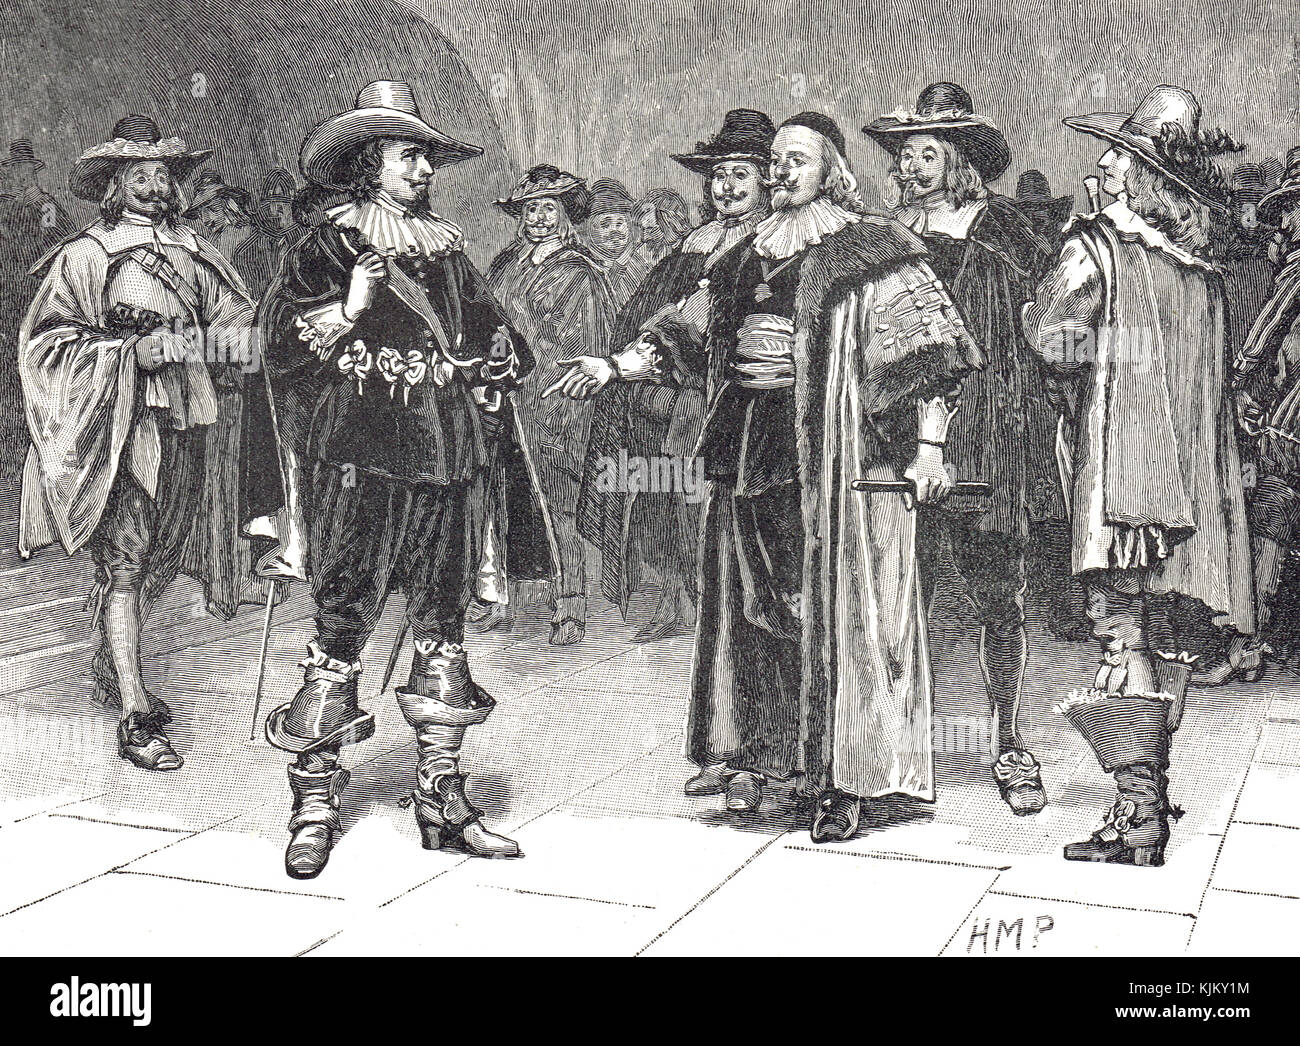 Arrest of Thomas Wentworth, the Earl of Strafford, 11 November 1640 - Stock Image